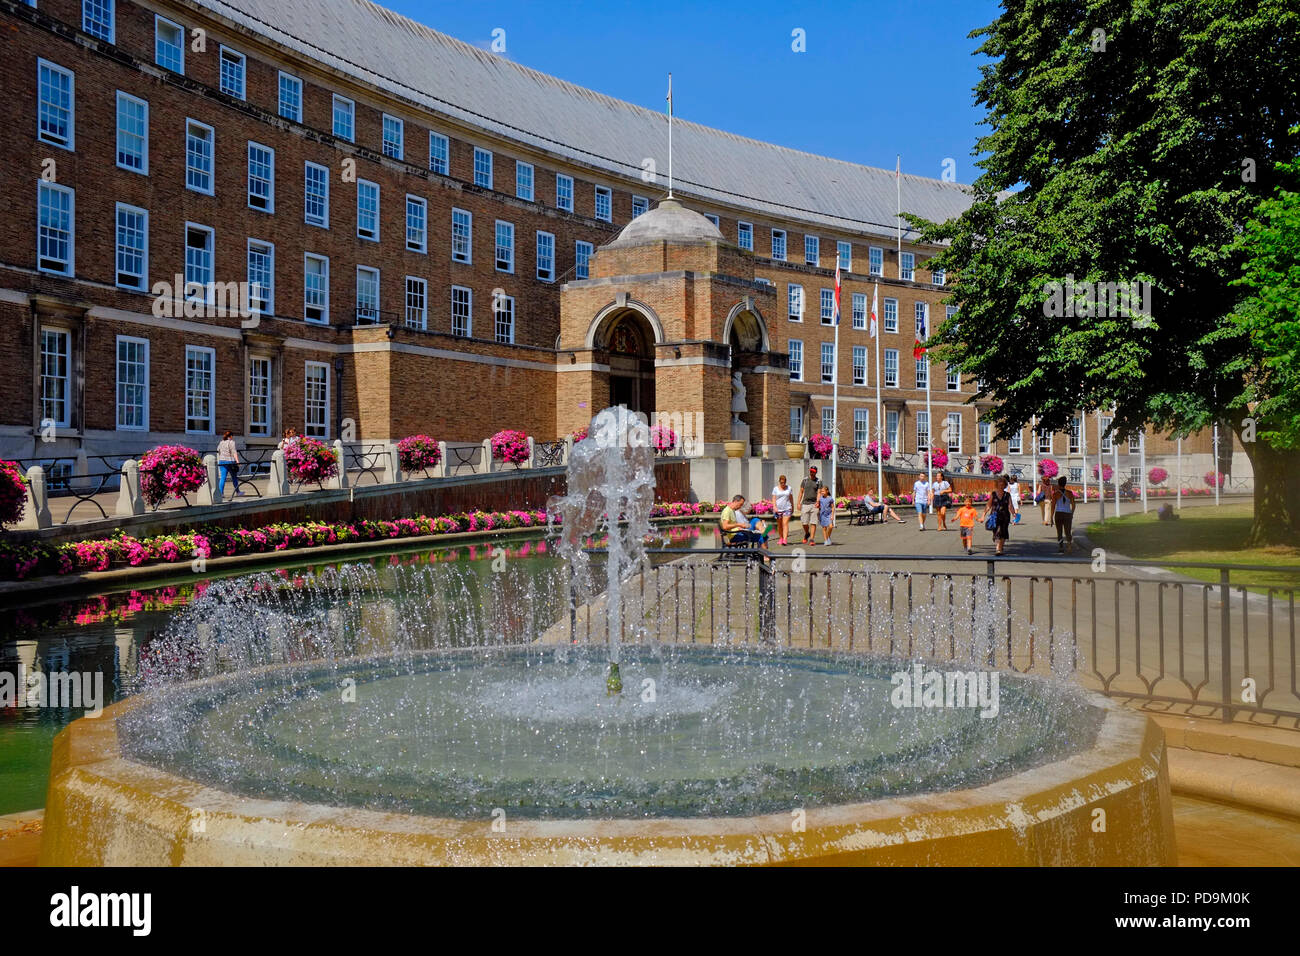 Bristol Council House or City Hall, Bristol, UK - Stock Image